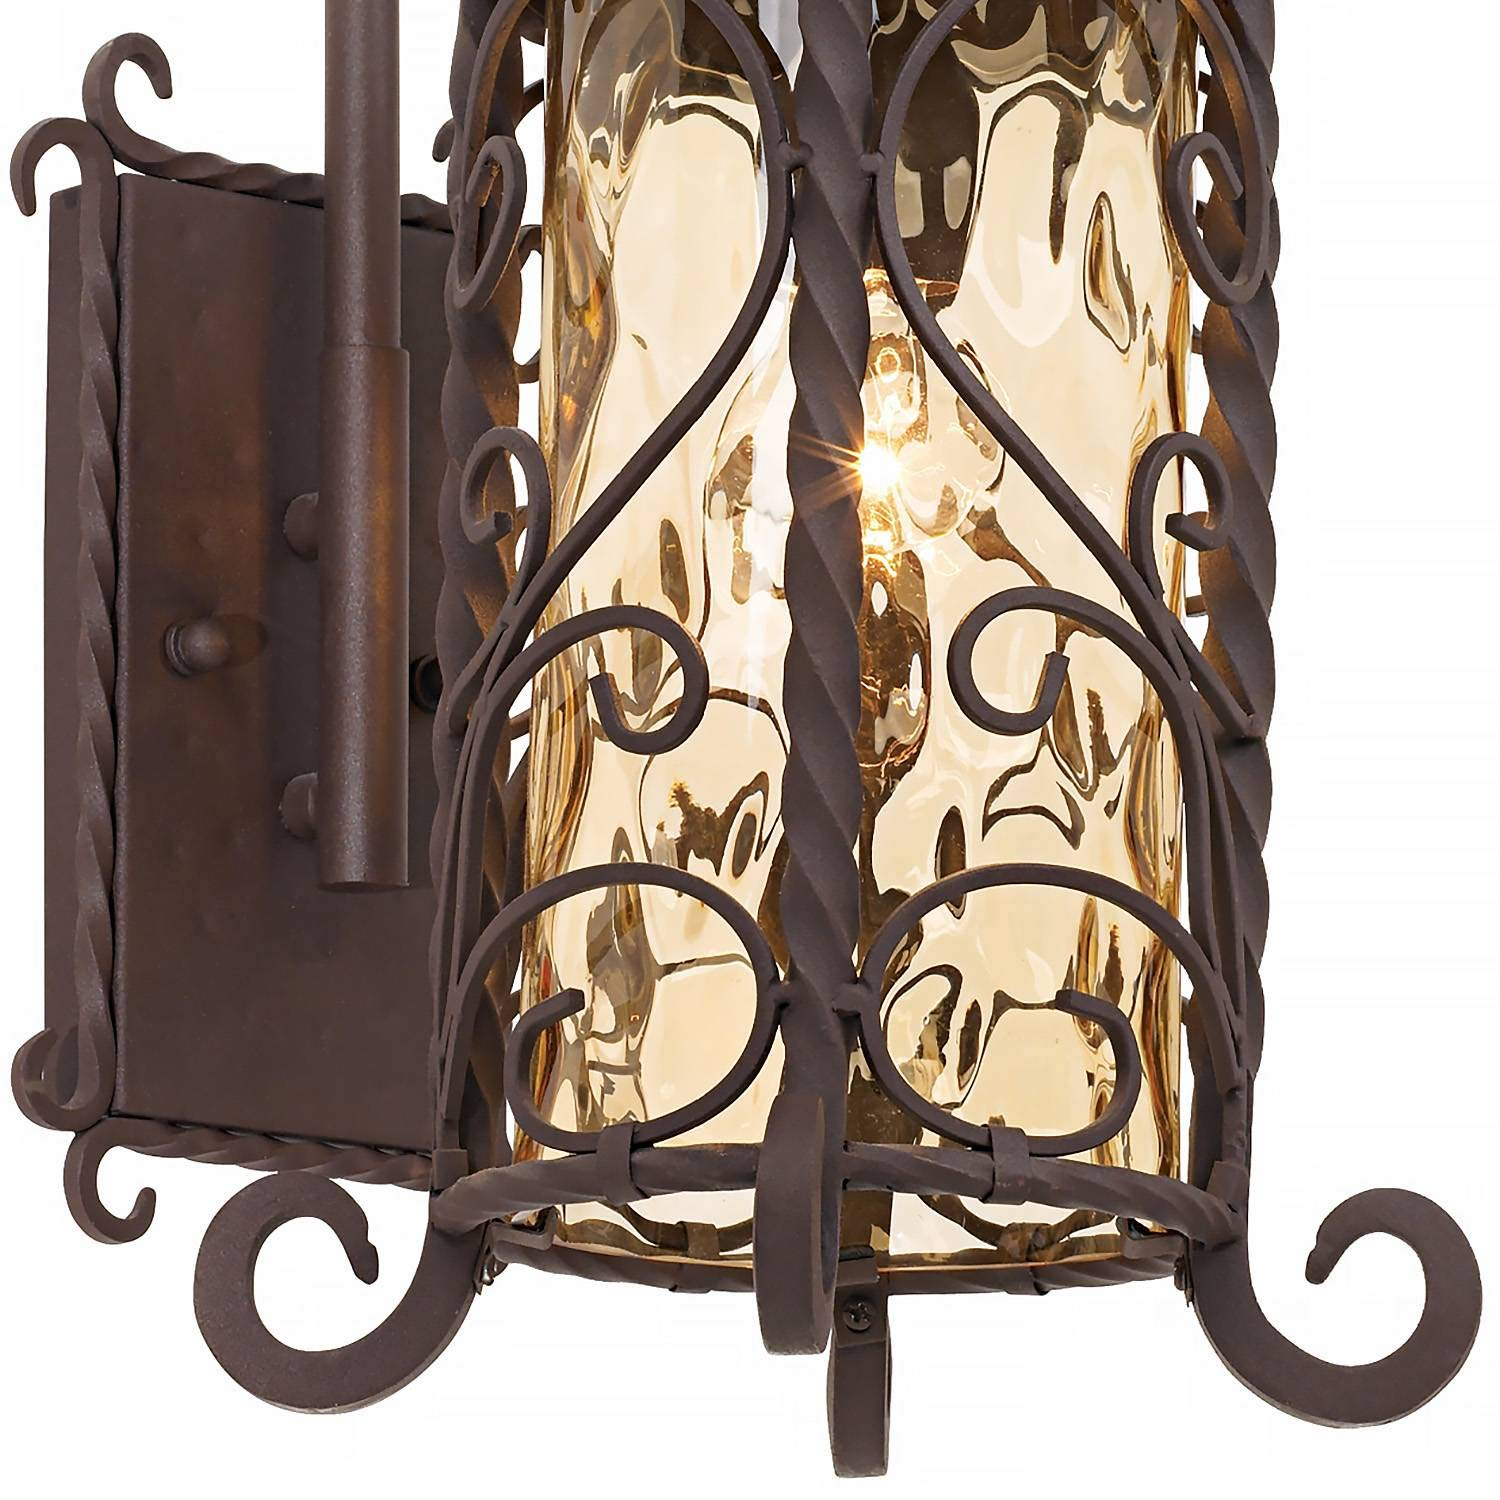 Casa Seville Rustic Outdoor Wall Light Fixture Mediterranean Inspired Dark Walnut Iron Twists 18 1/2'' Champagne Hammered Glass for Exterior House Porch Patio Deck - John Timberland by John Timberland (Image #4)